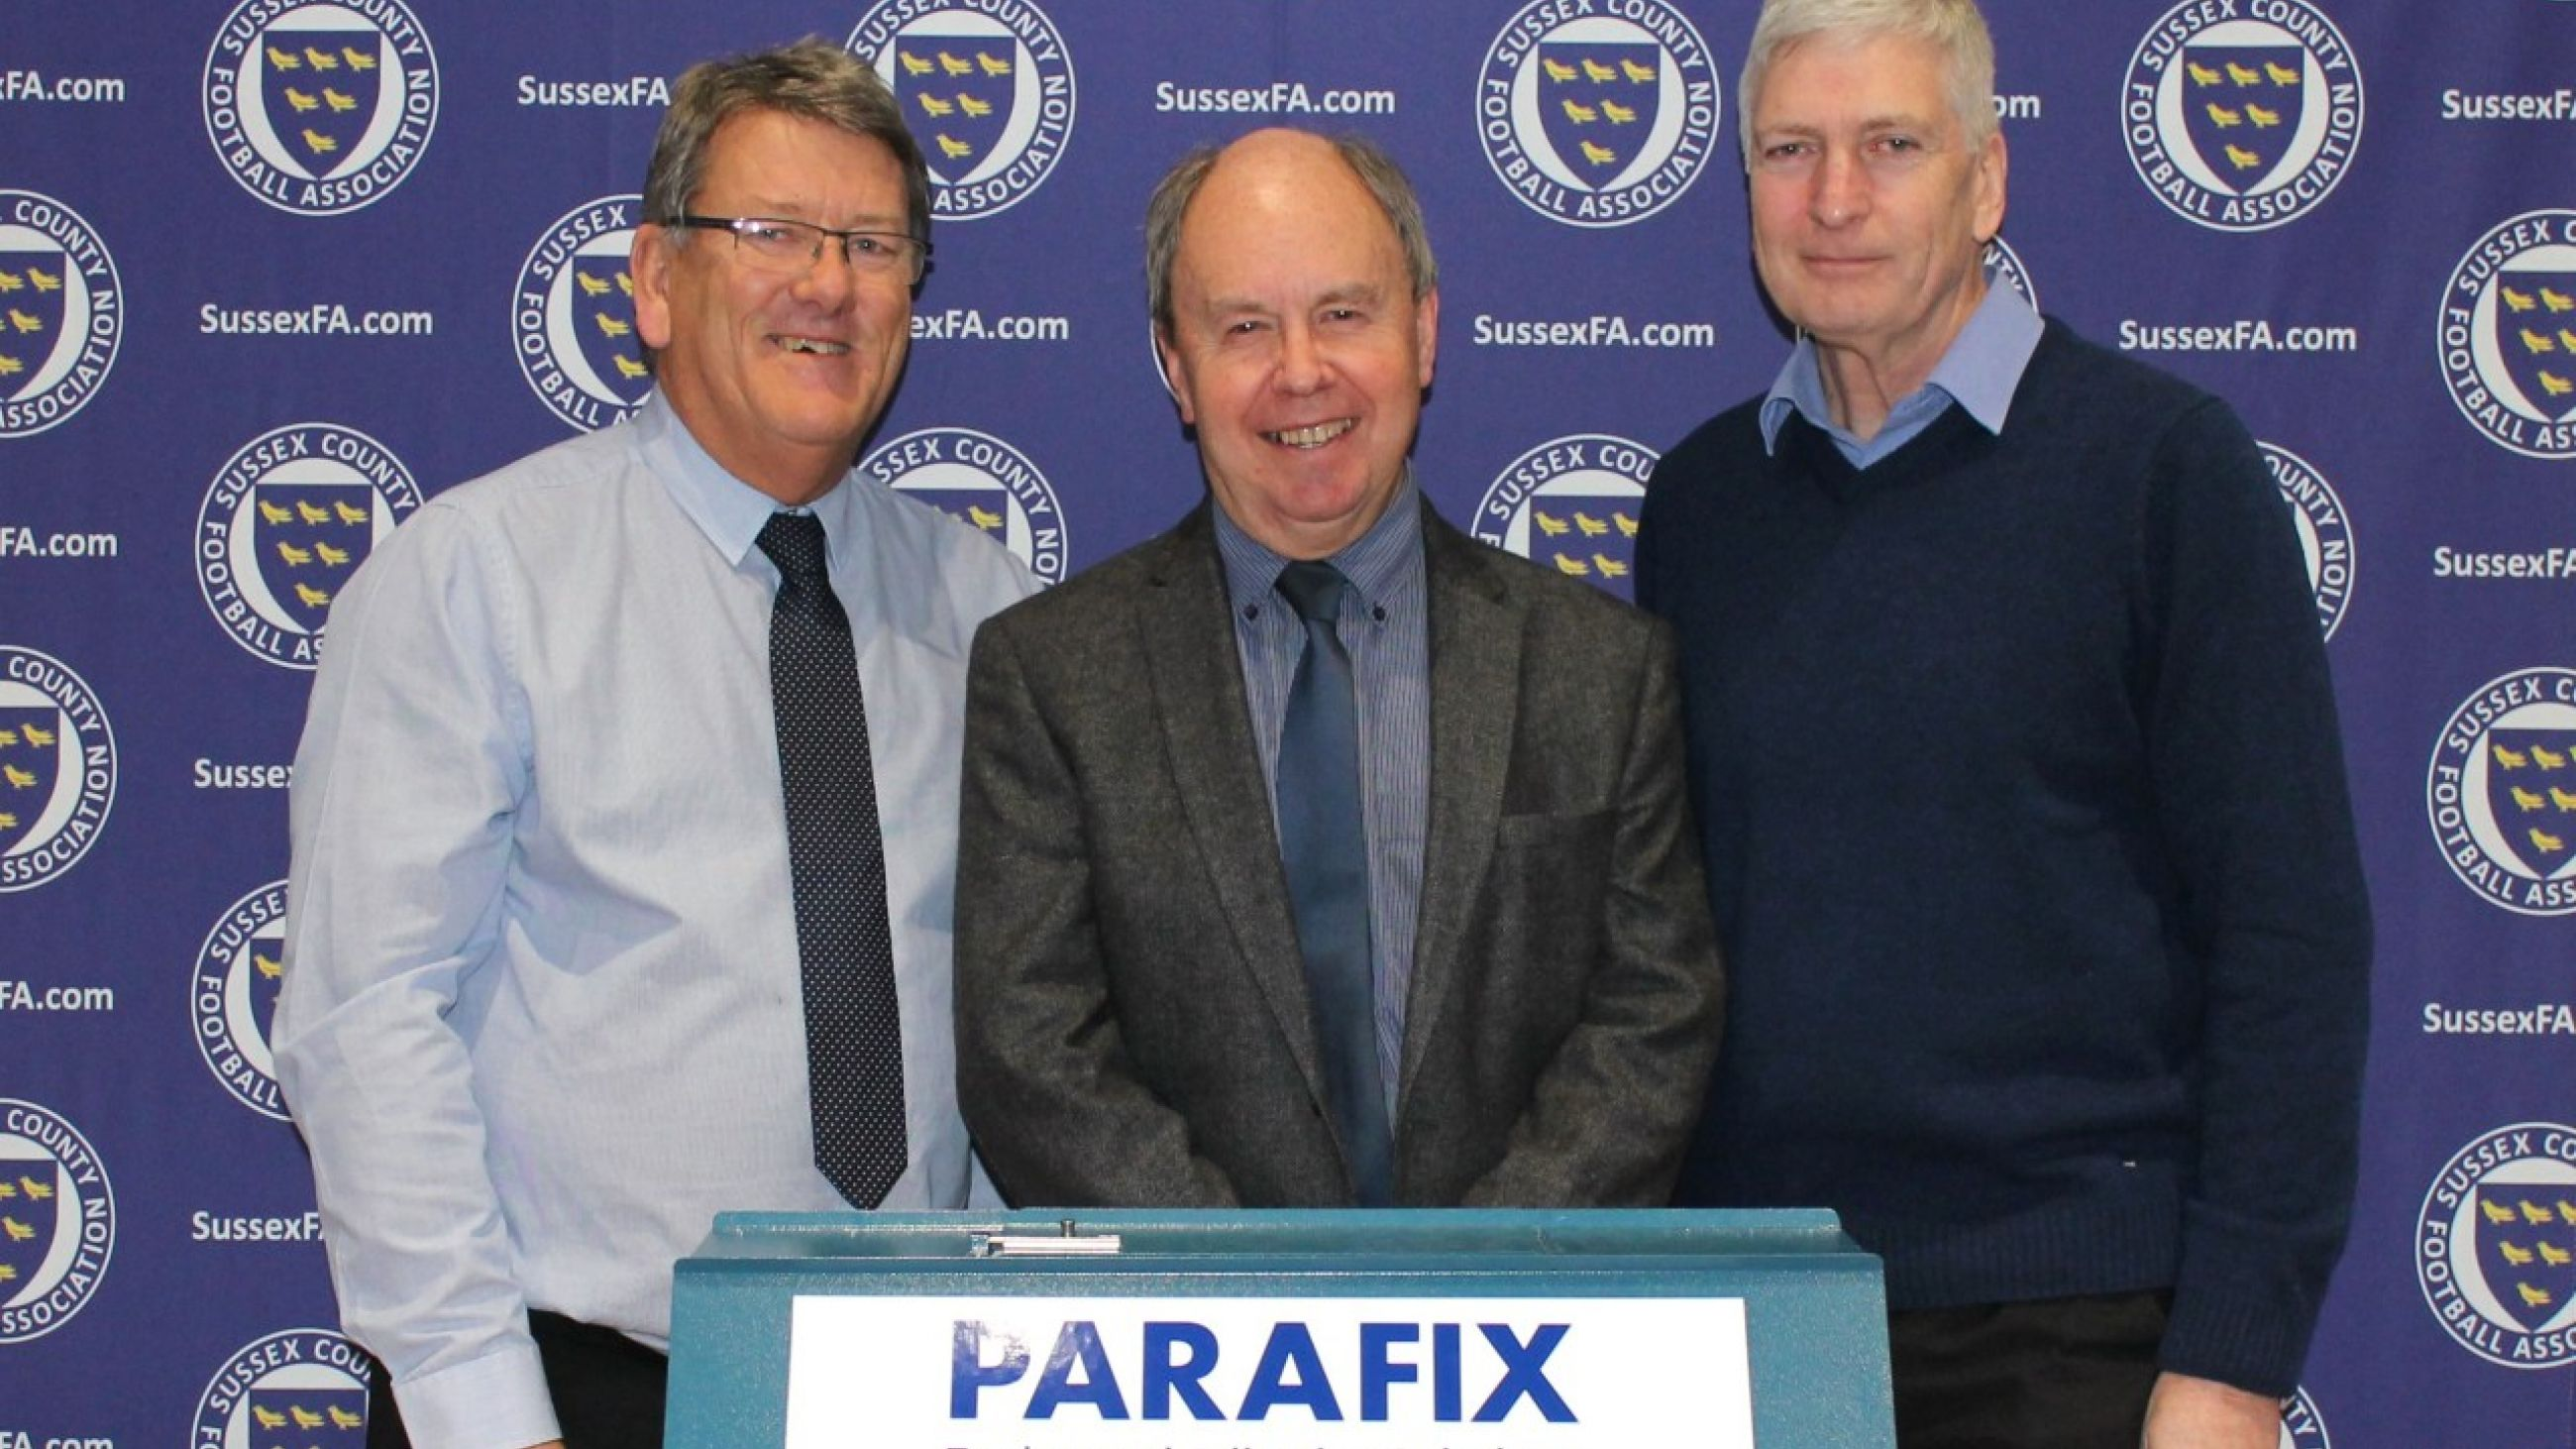 Parafix Sussex Senior Challenge Cup Semi Final Draw 2017